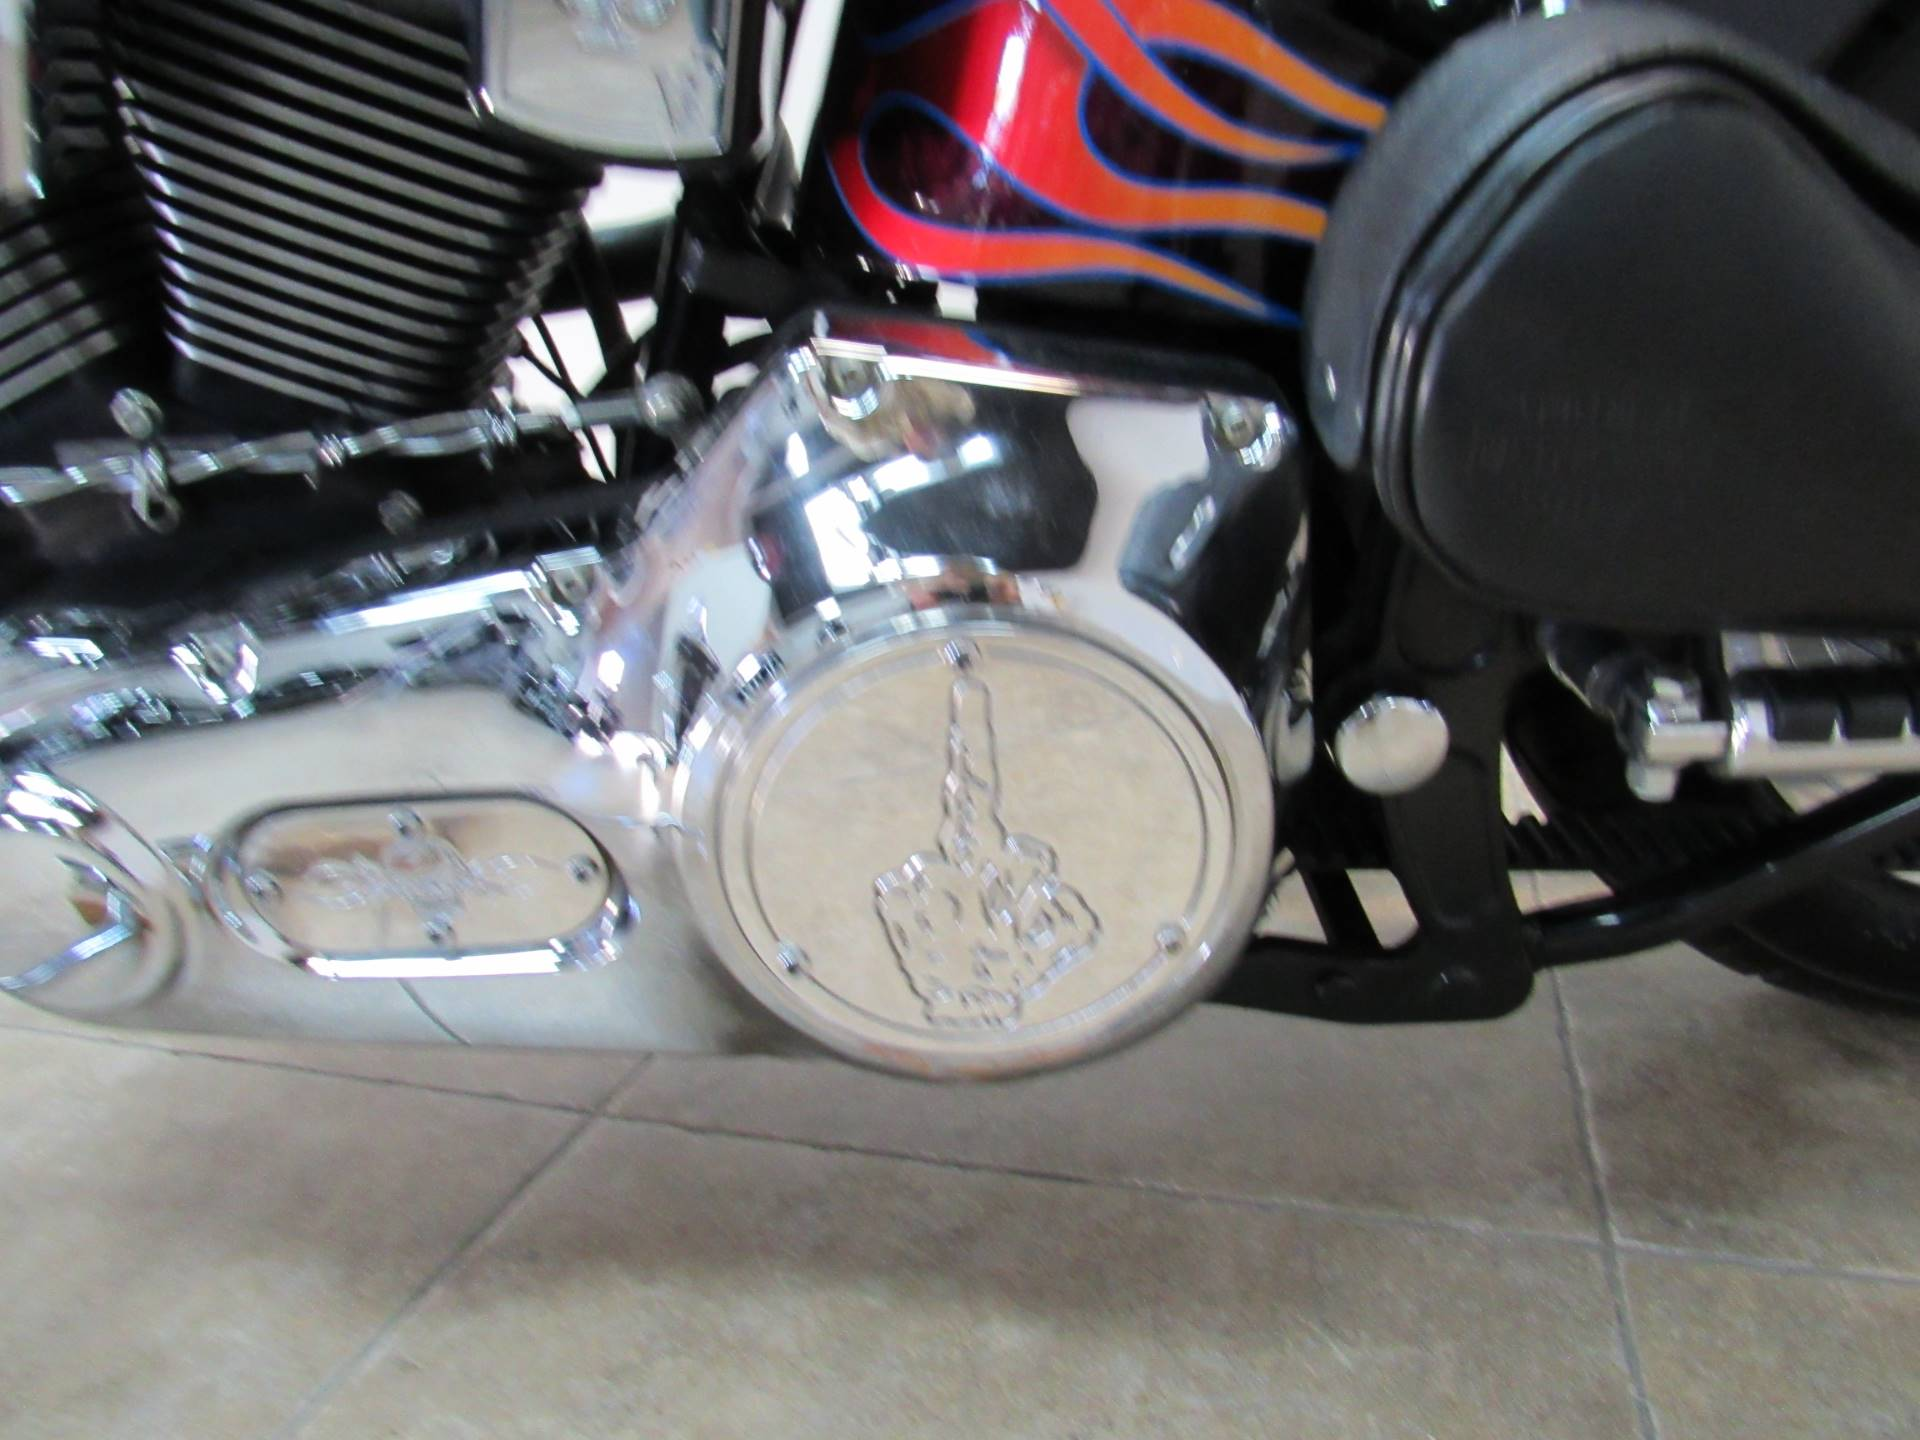 1996 Harley-Davidson softail custom in Temecula, California - Photo 27